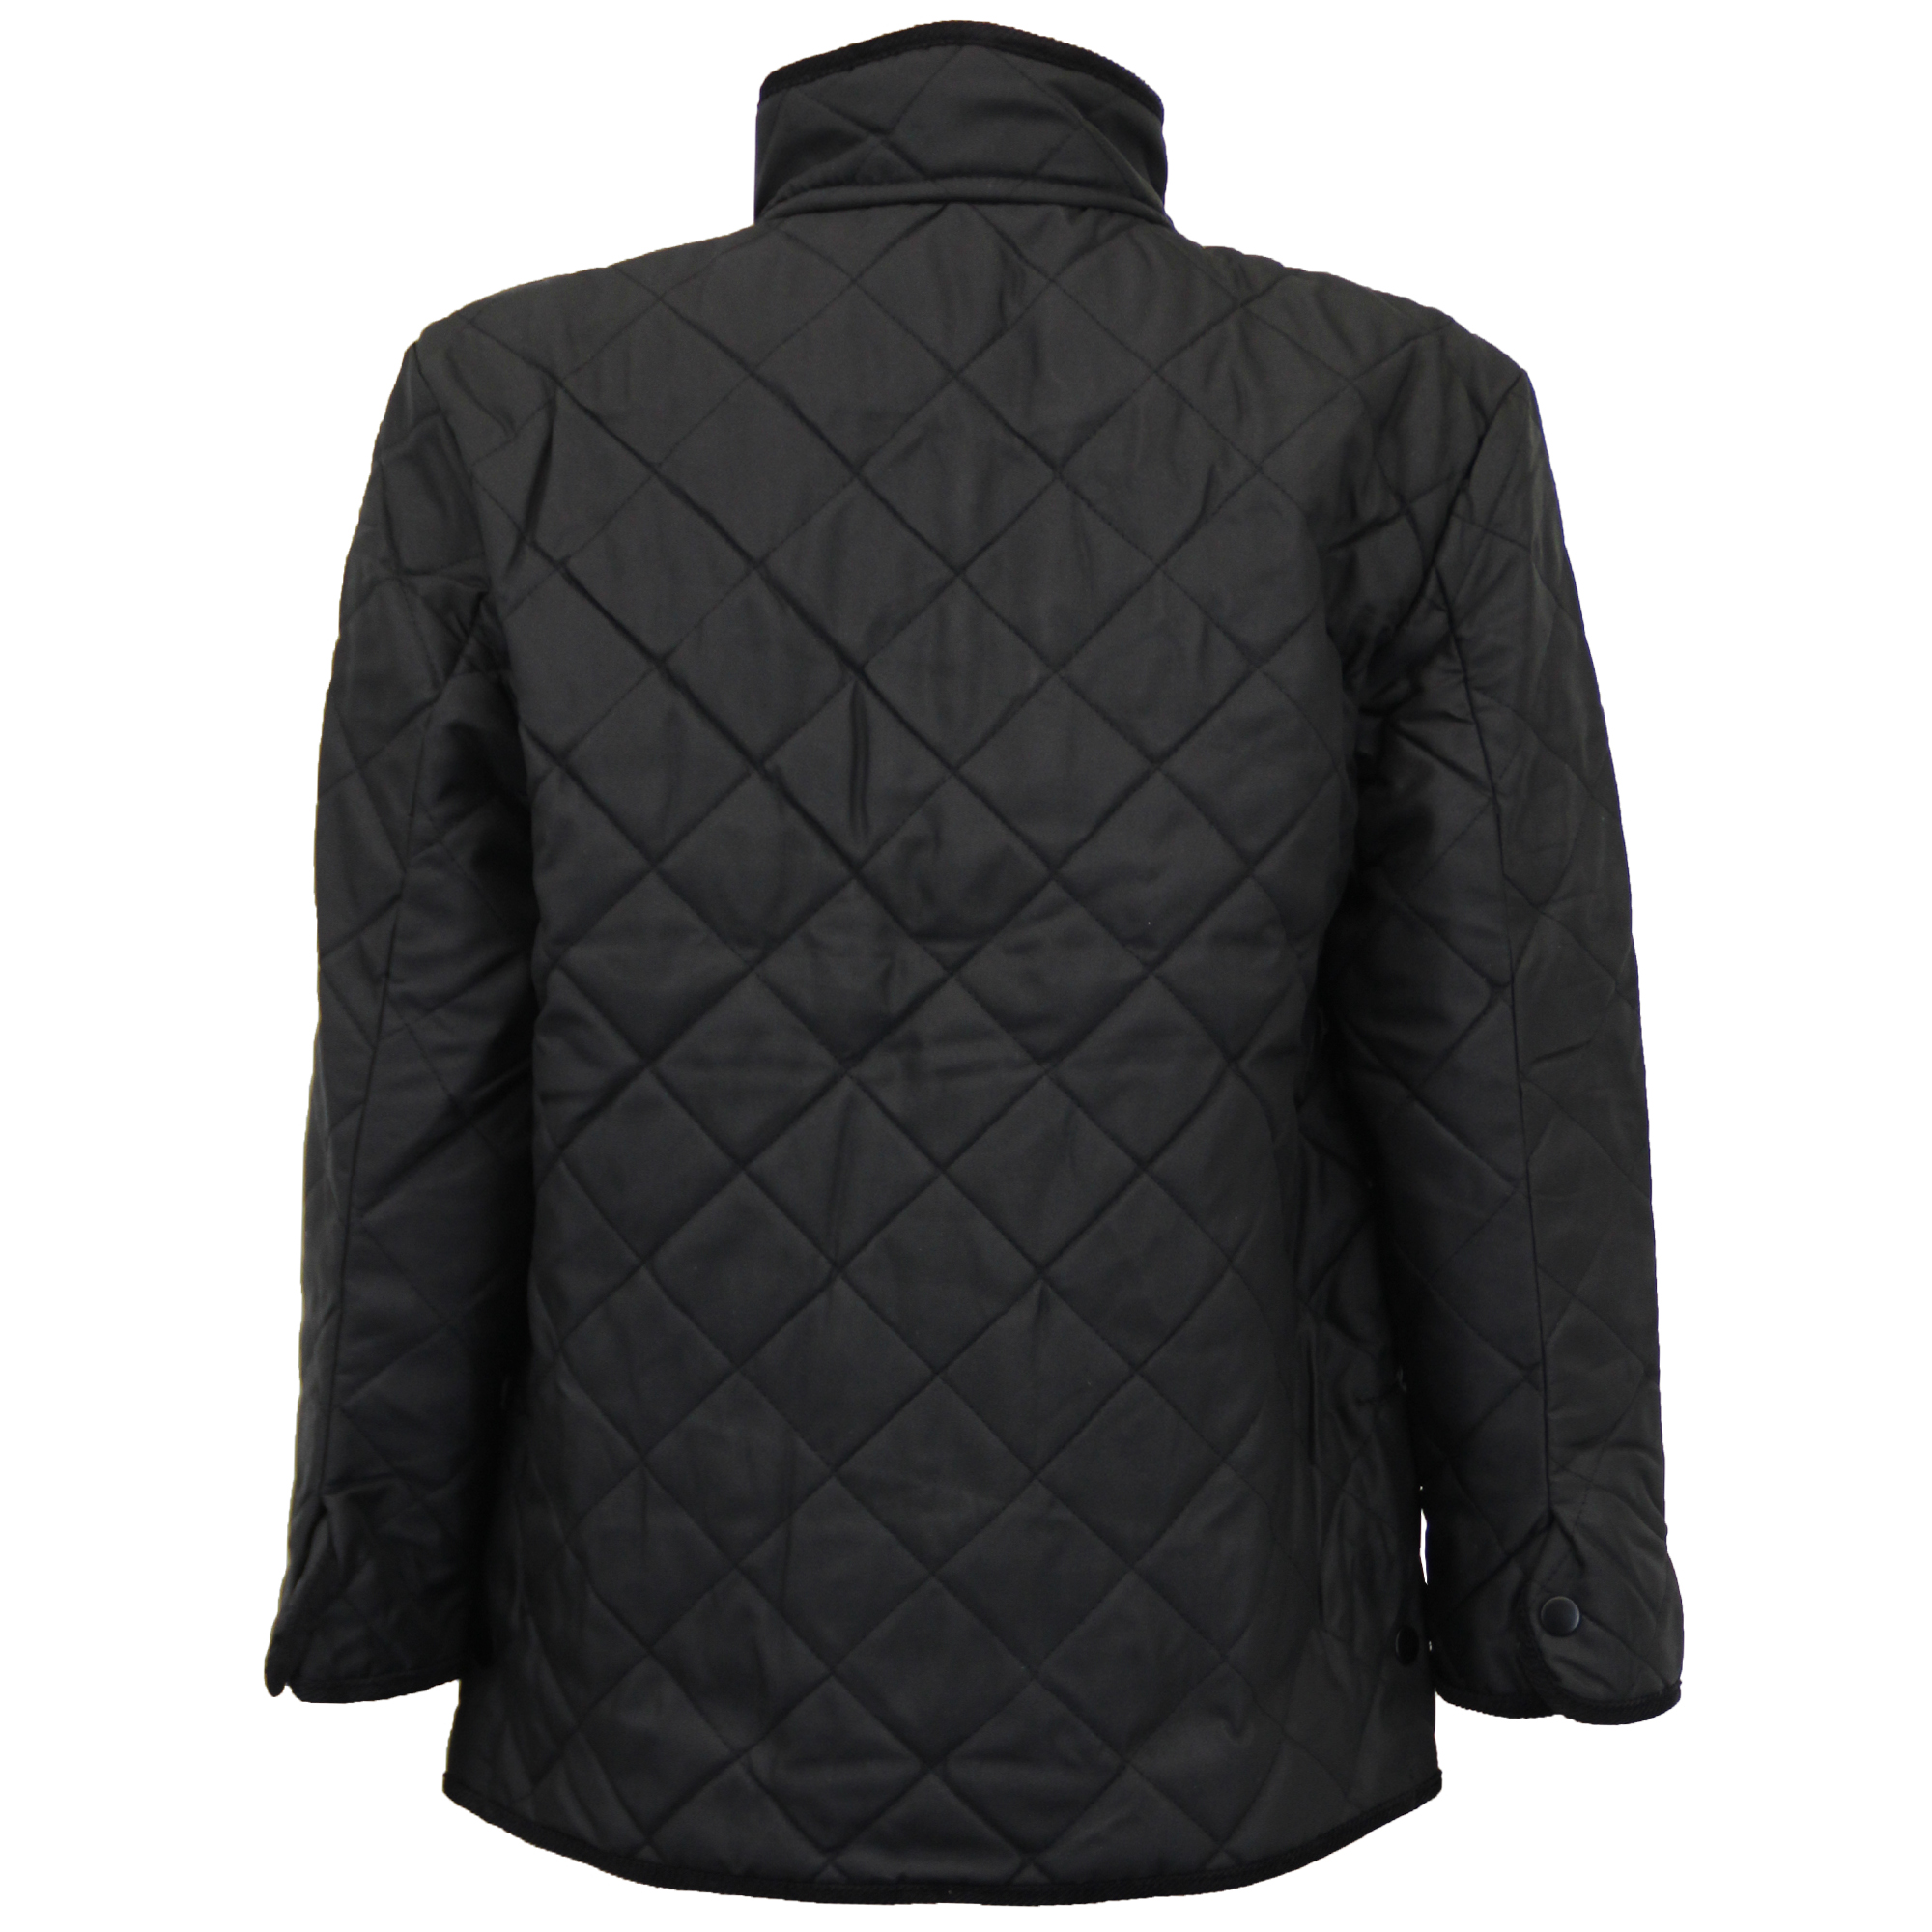 jacket arrivals zoom quilt quilted new featured men hunter blue deepest us